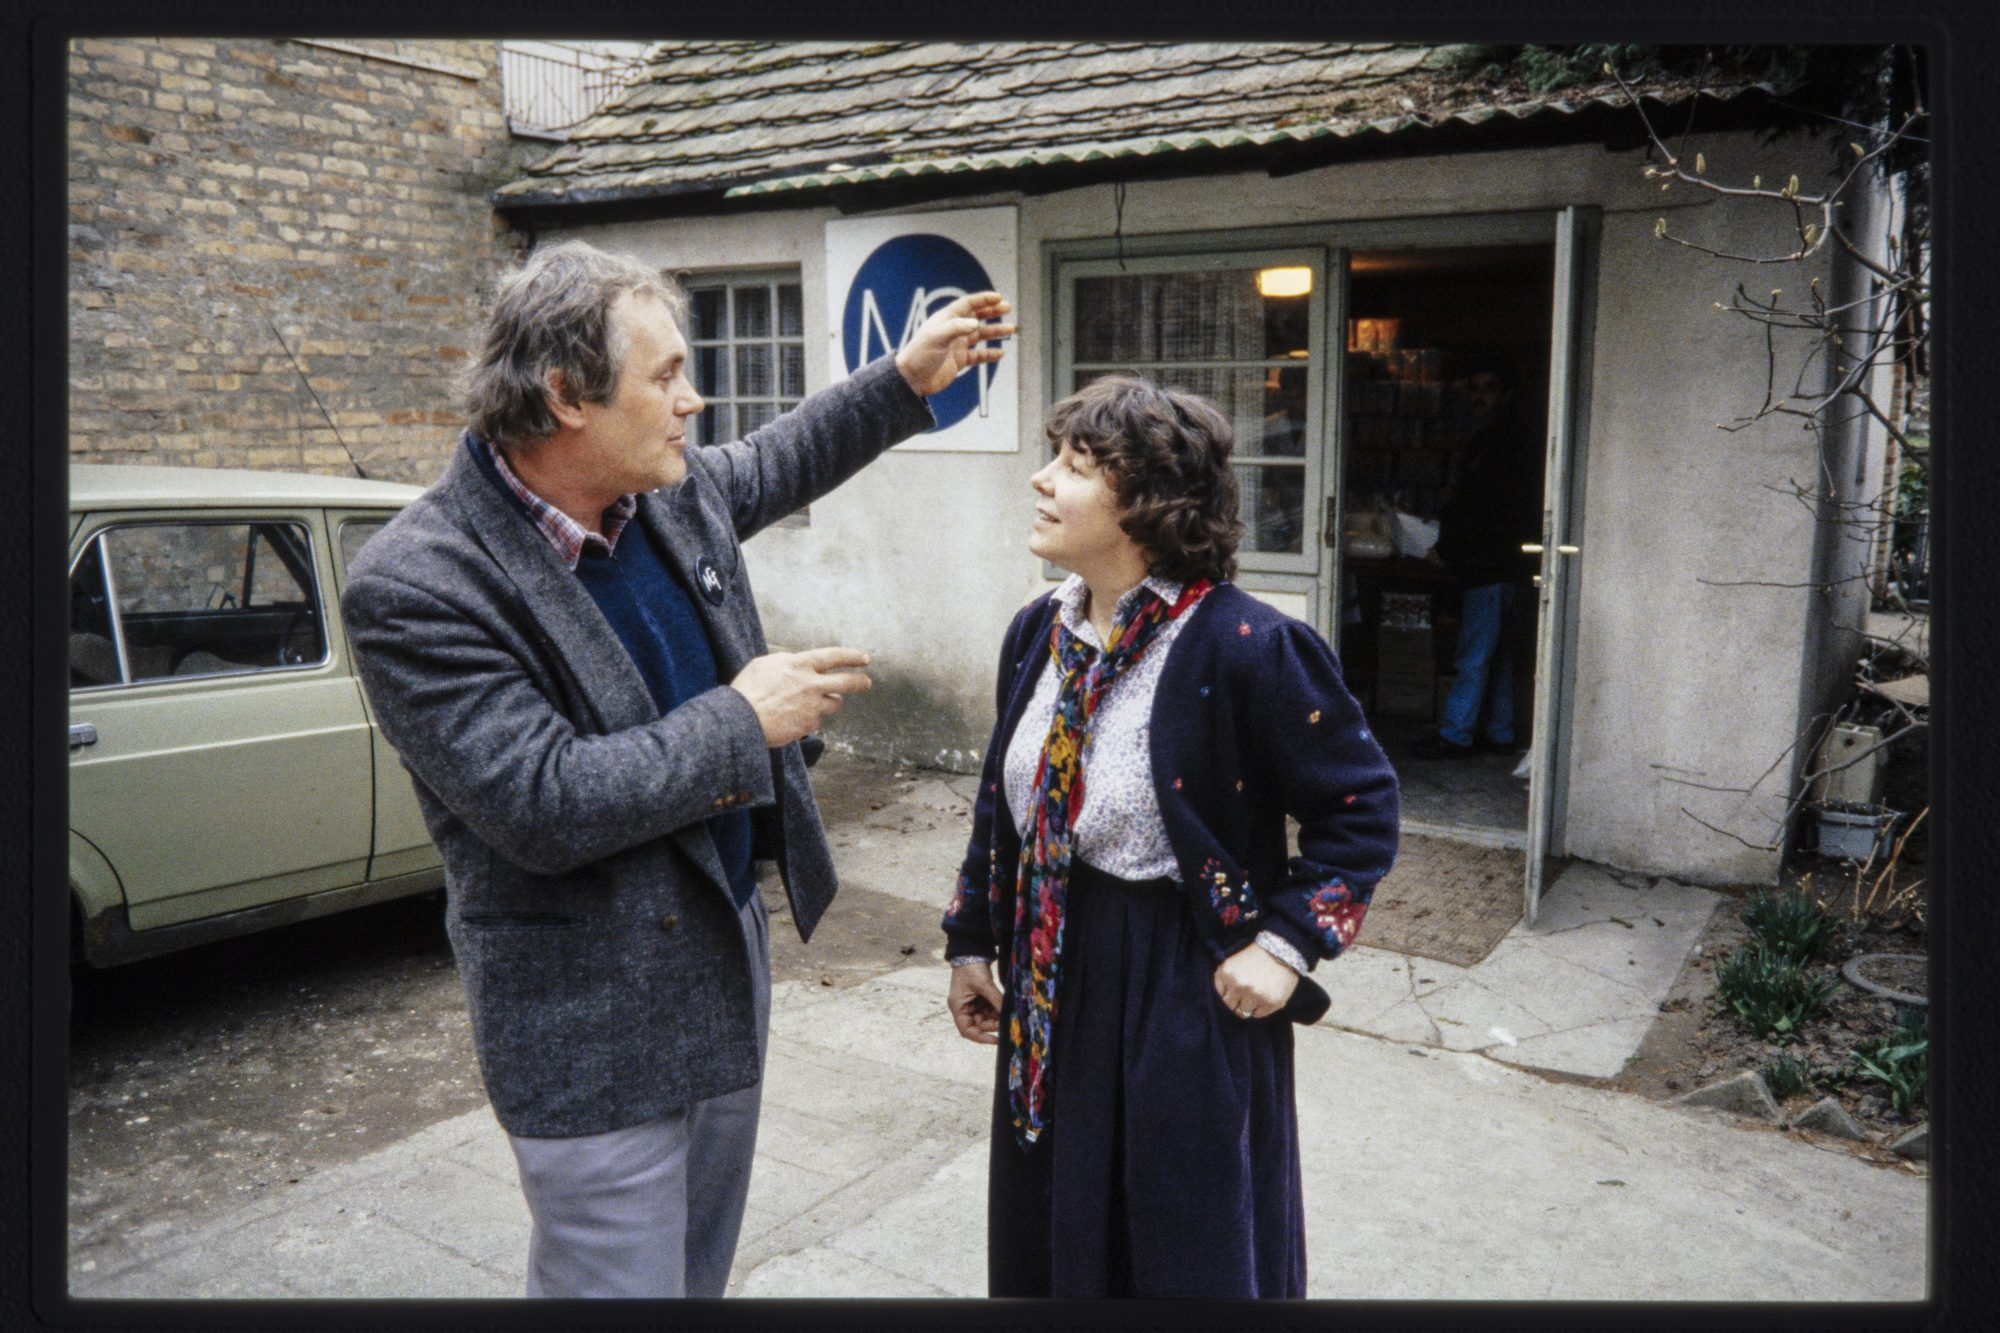 Nela Williams talks with Josip Deak, a Baptist layman who works with Getsemani Mission, a Baptist organization doing relief ministry in the war zone around Moscenica.